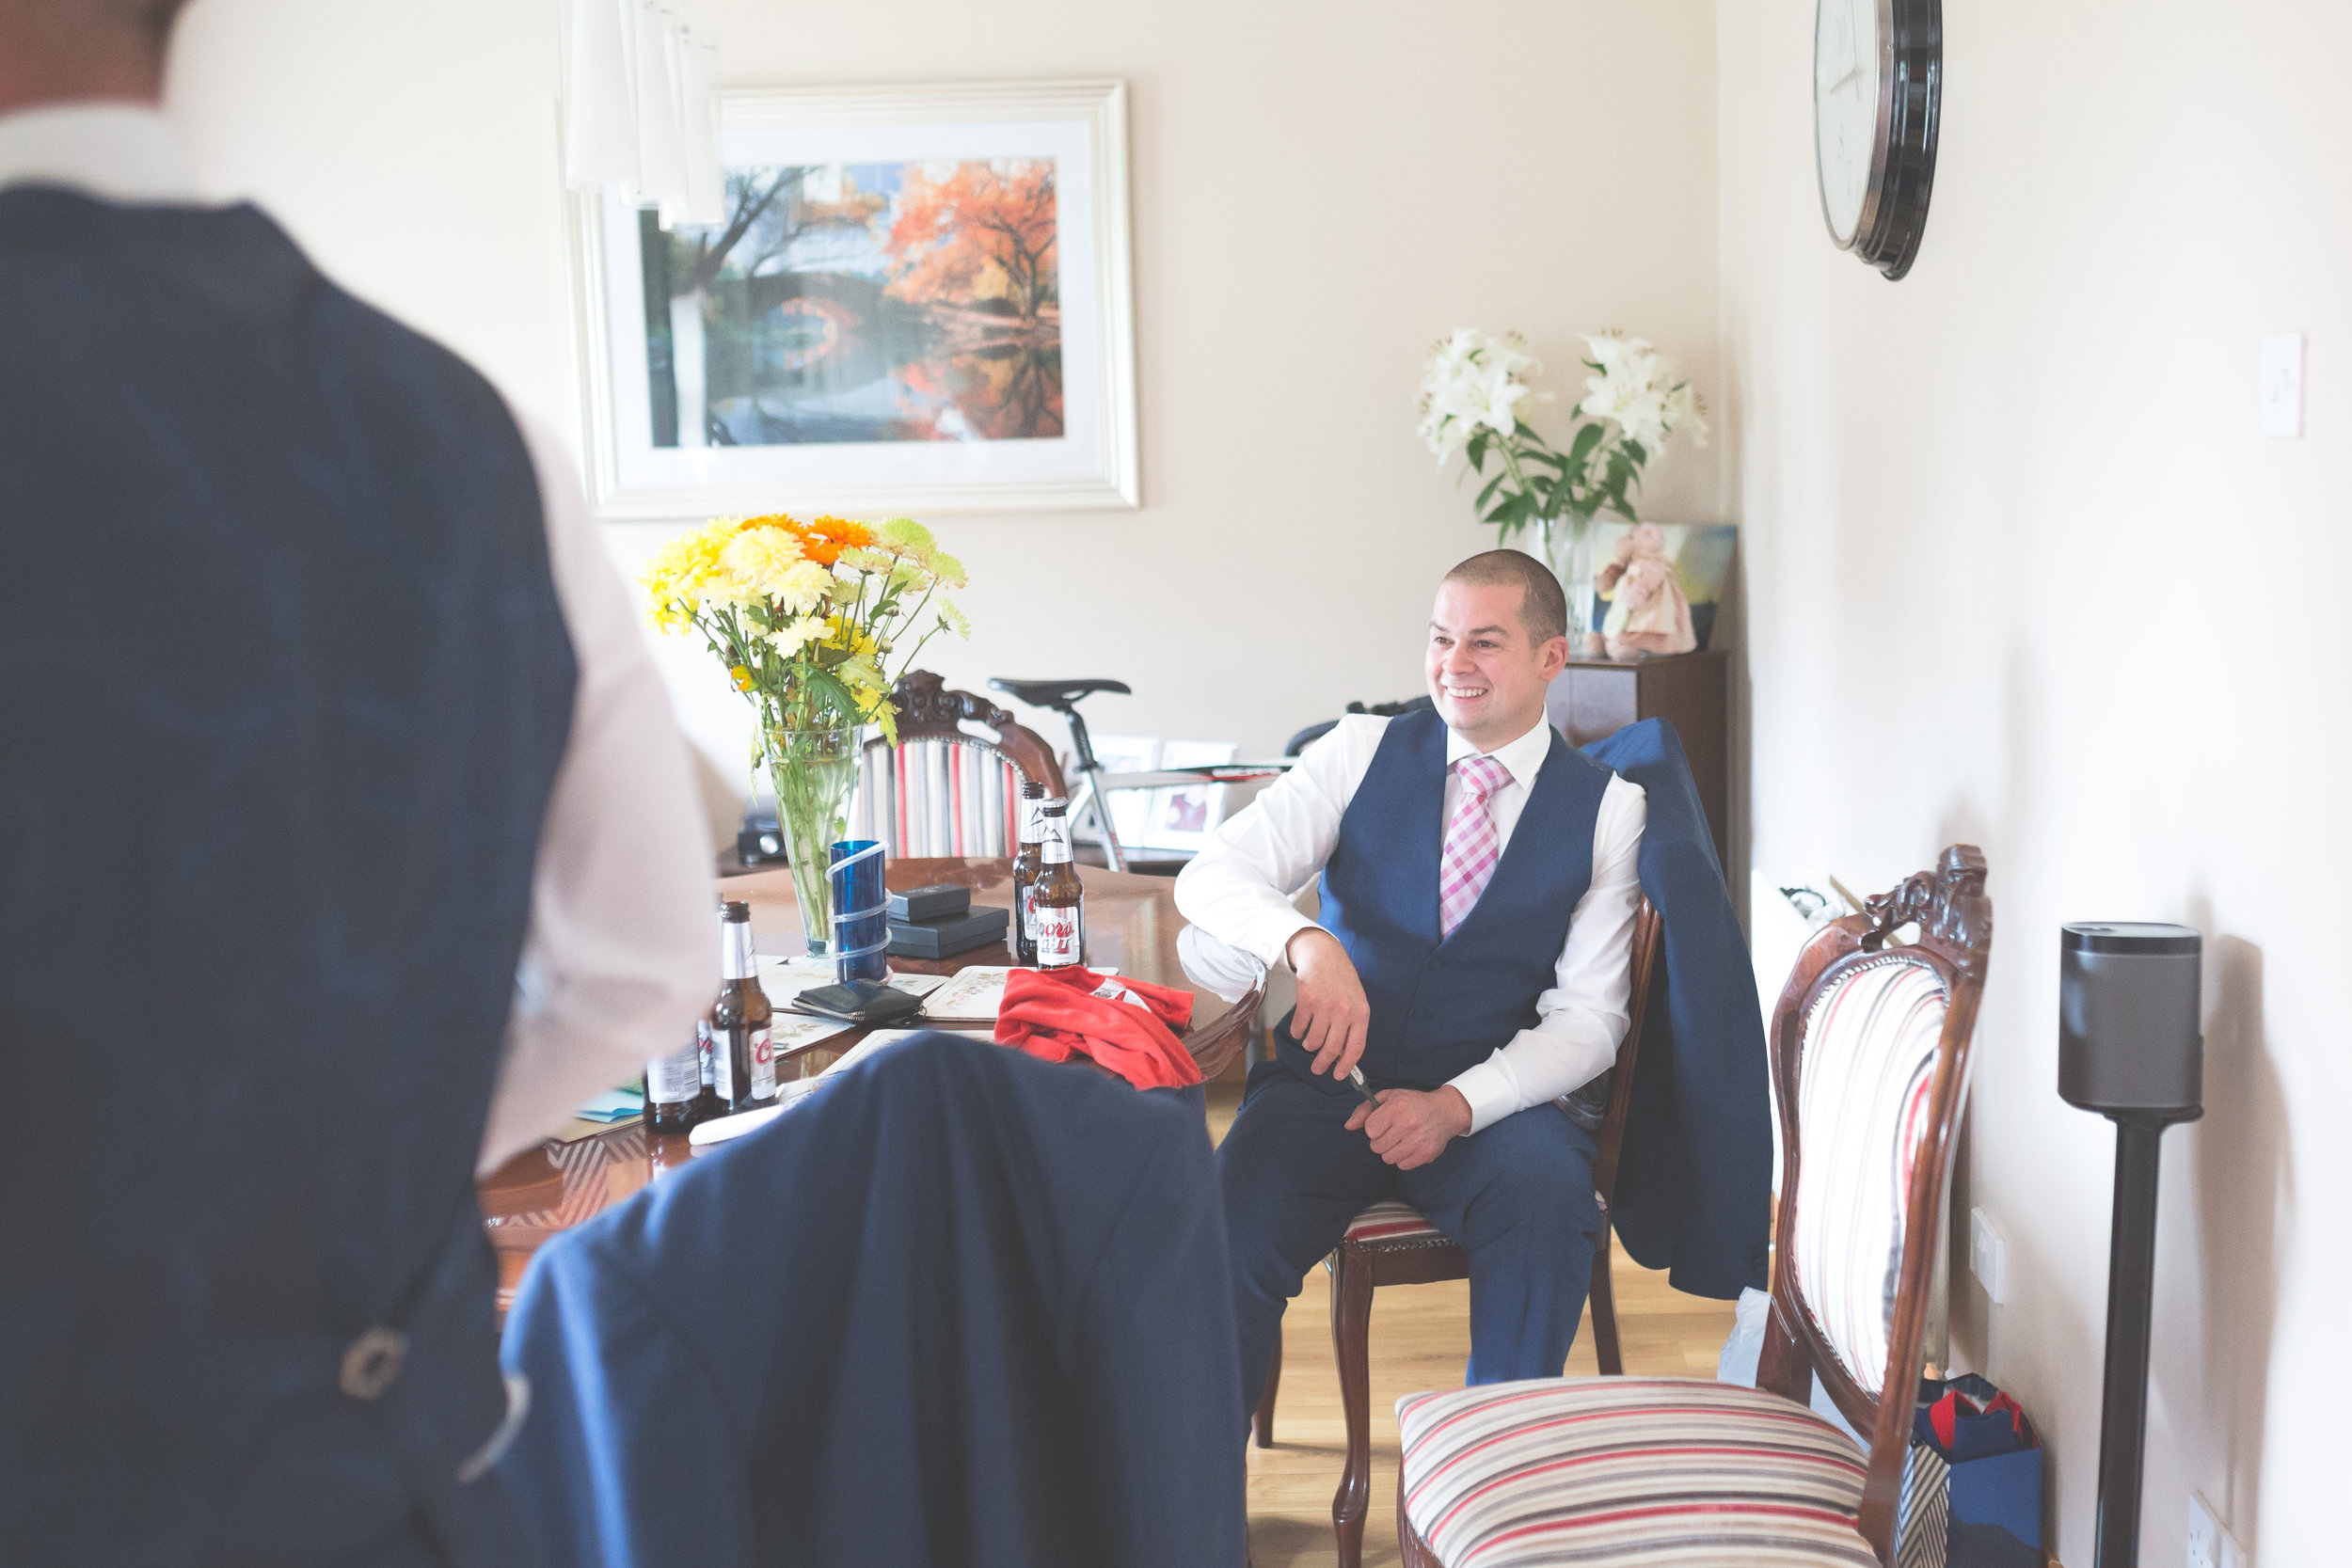 Antoinette & Stephen - Groom & Groomsmen | Brian McEwan Photography | Wedding Photographer Northern Ireland 20.jpg